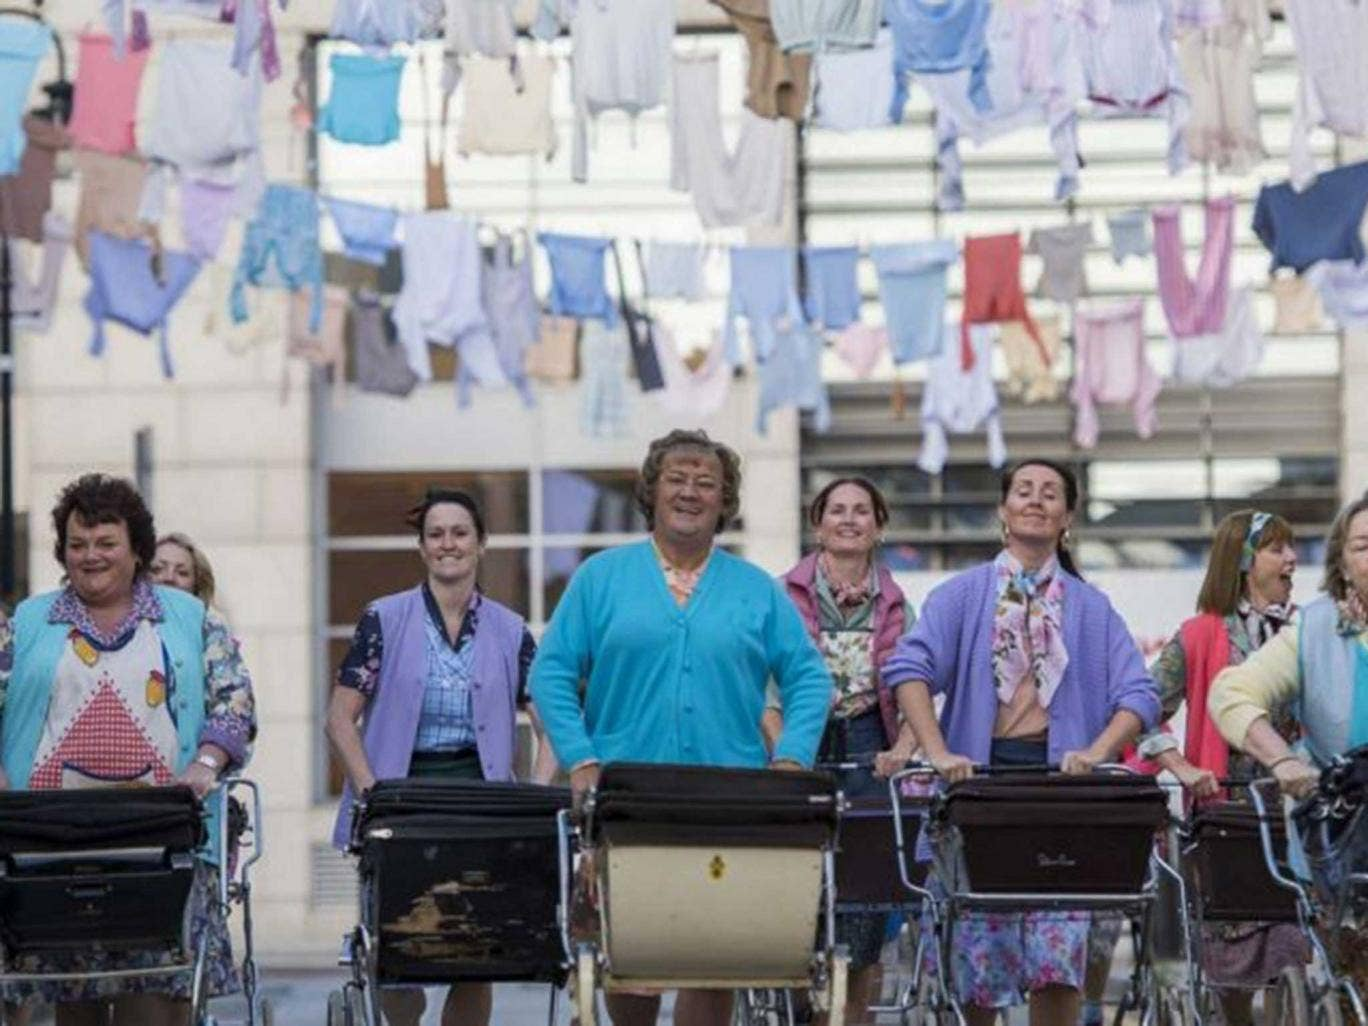 Mrs Brown's Boy: D'Movie has been a huge commercial success